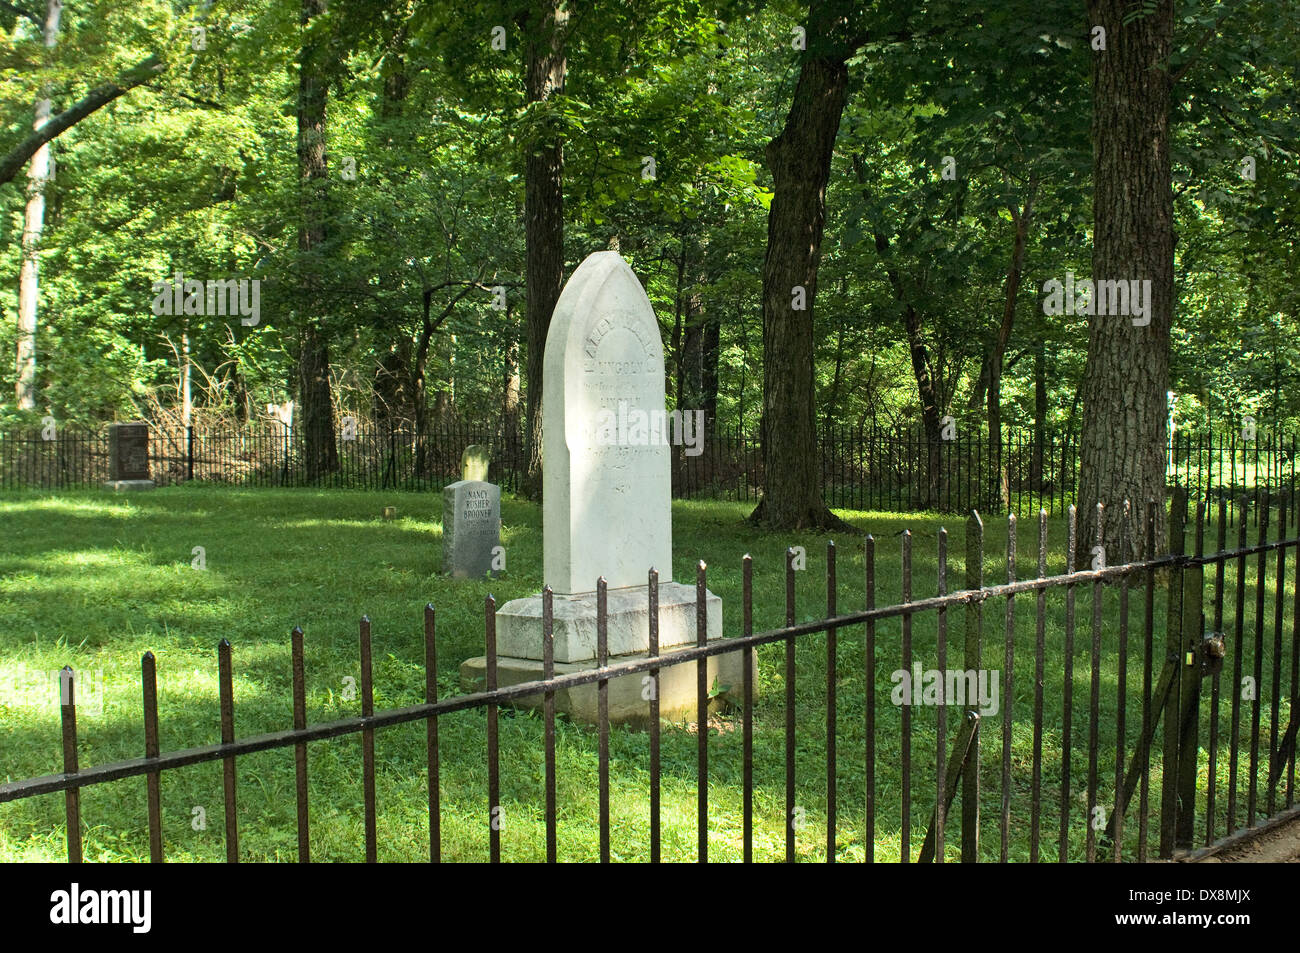 Grave of Nancy Hanks Lincoln, Lincoln Boyhood National Memorial, Indiana. Digital photograph - Stock Image